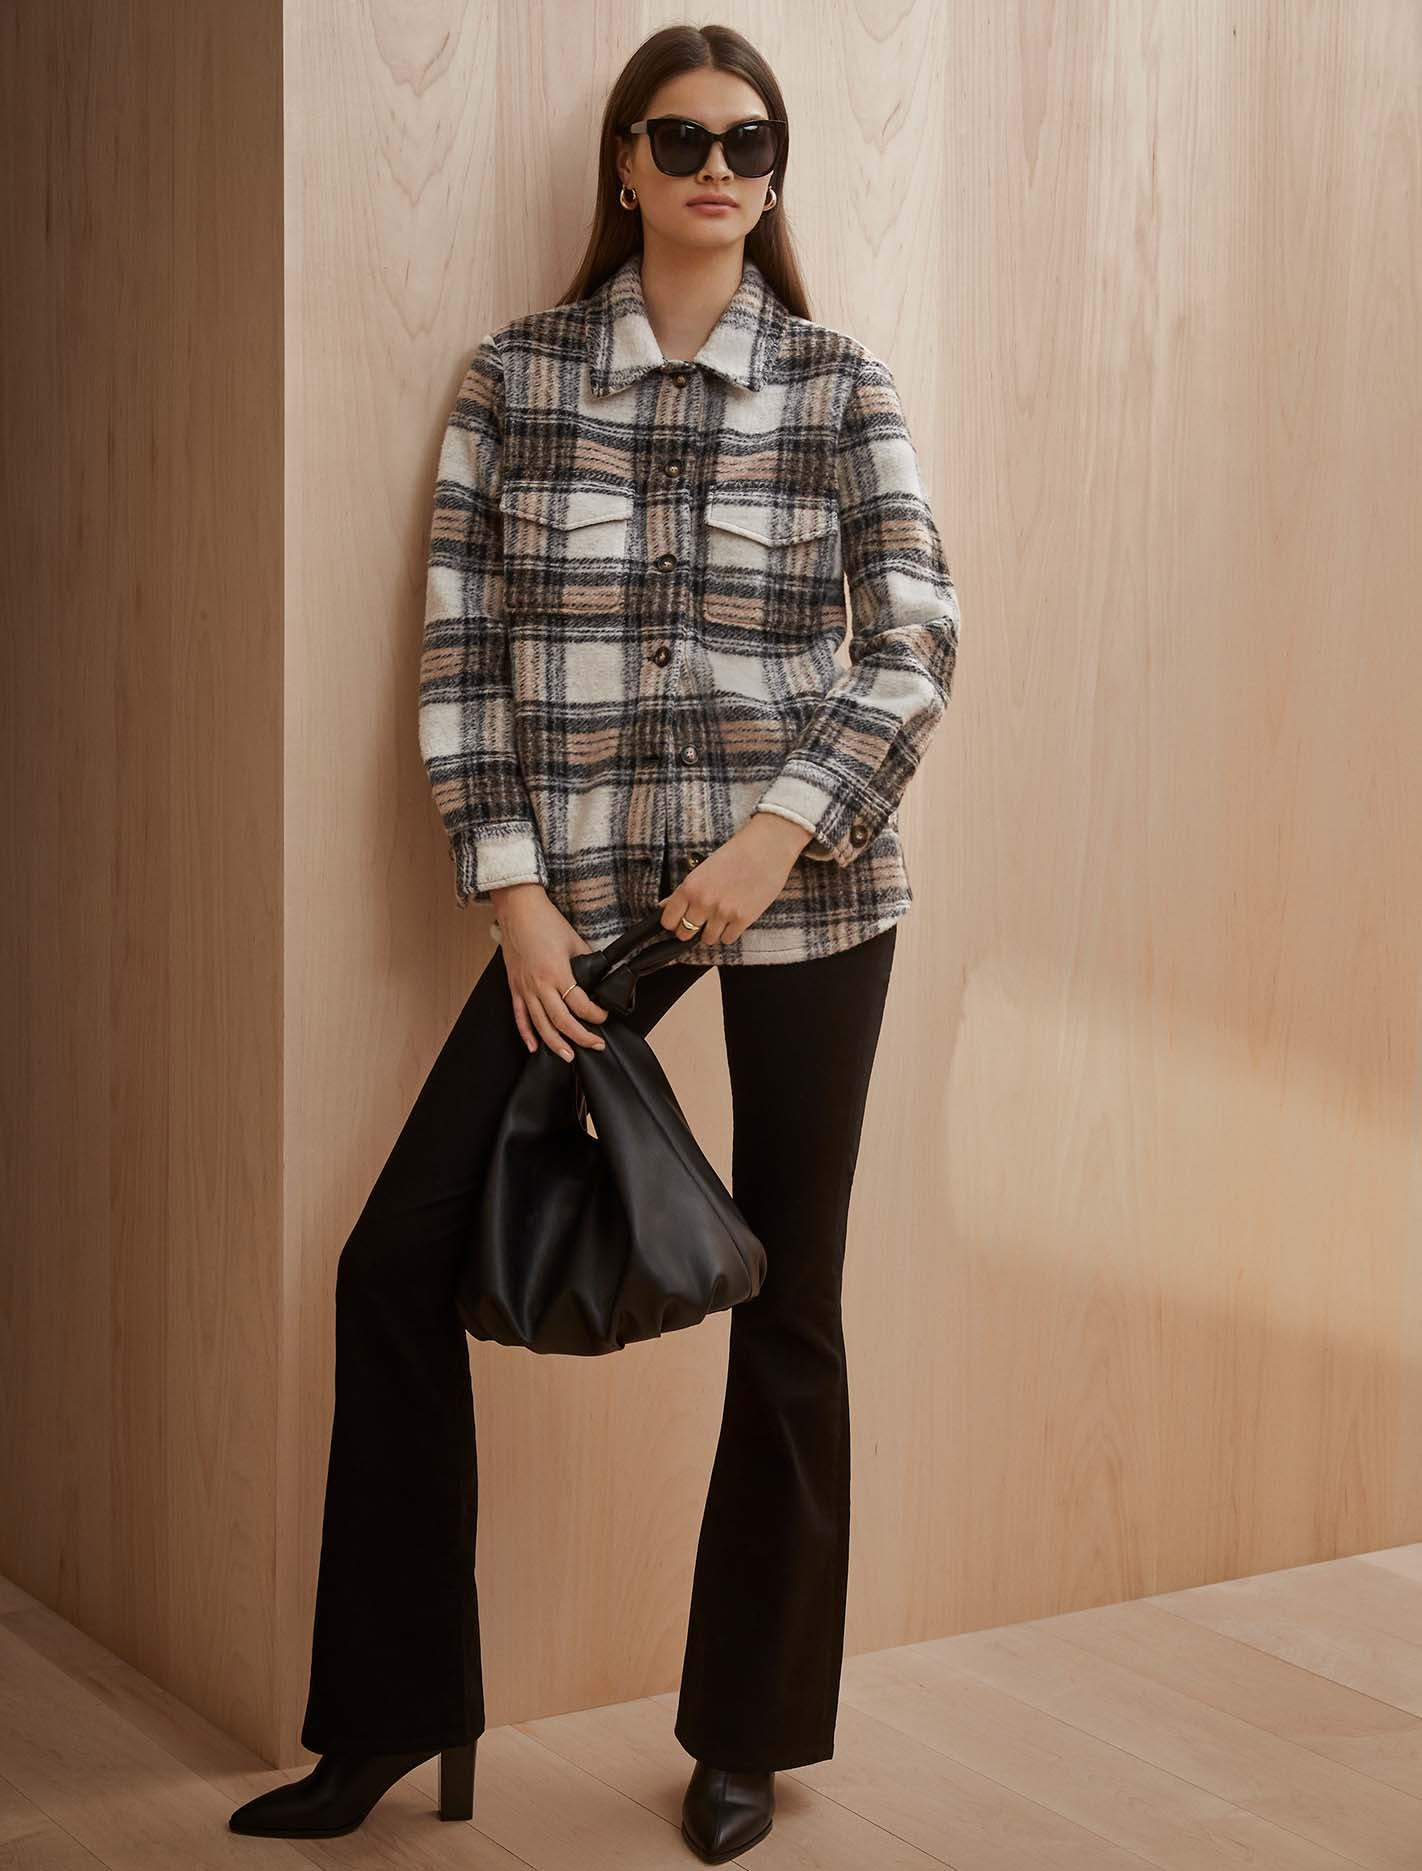 Ever New Country Check Shacket - Brown/Beige/Black Check